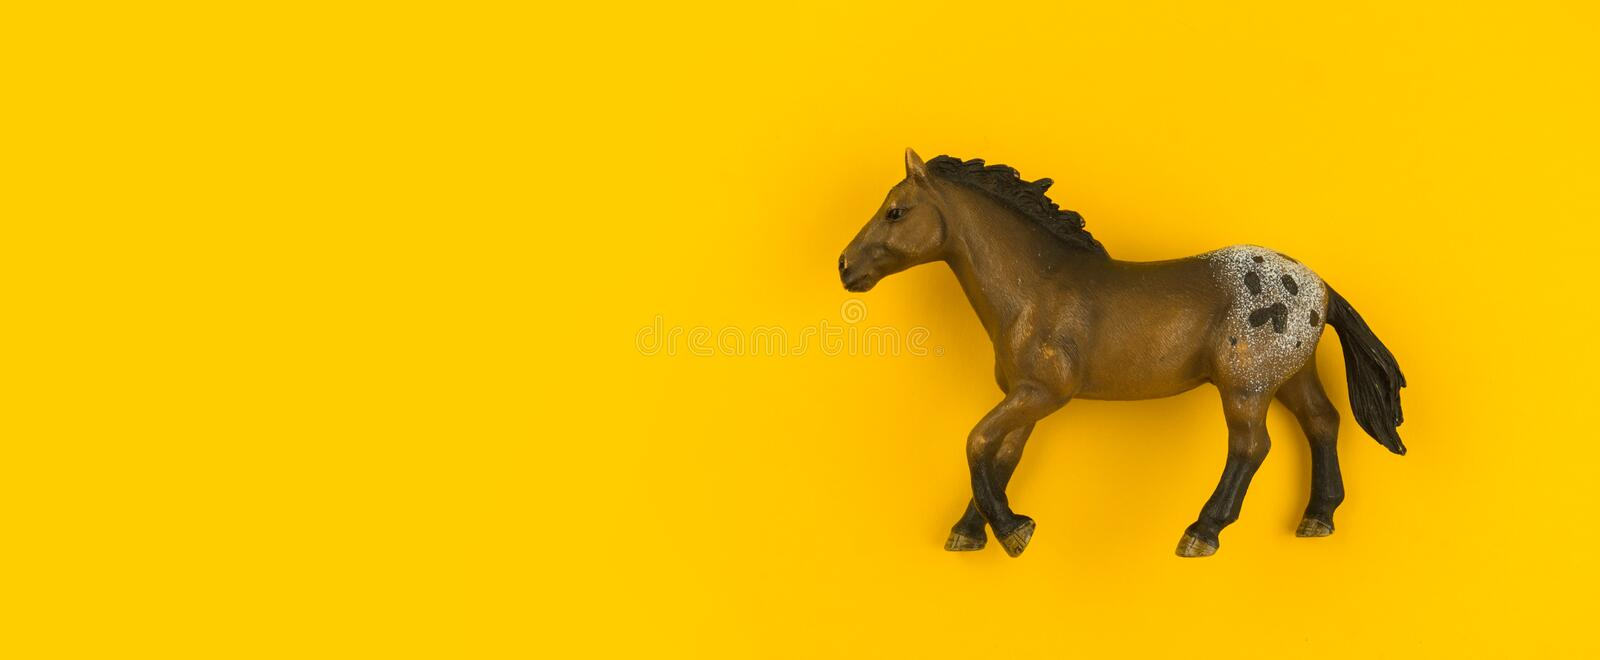 Toy horse made of plastic on a yellow background. Animal from the farm for the child. Pet artiodactyl stock images